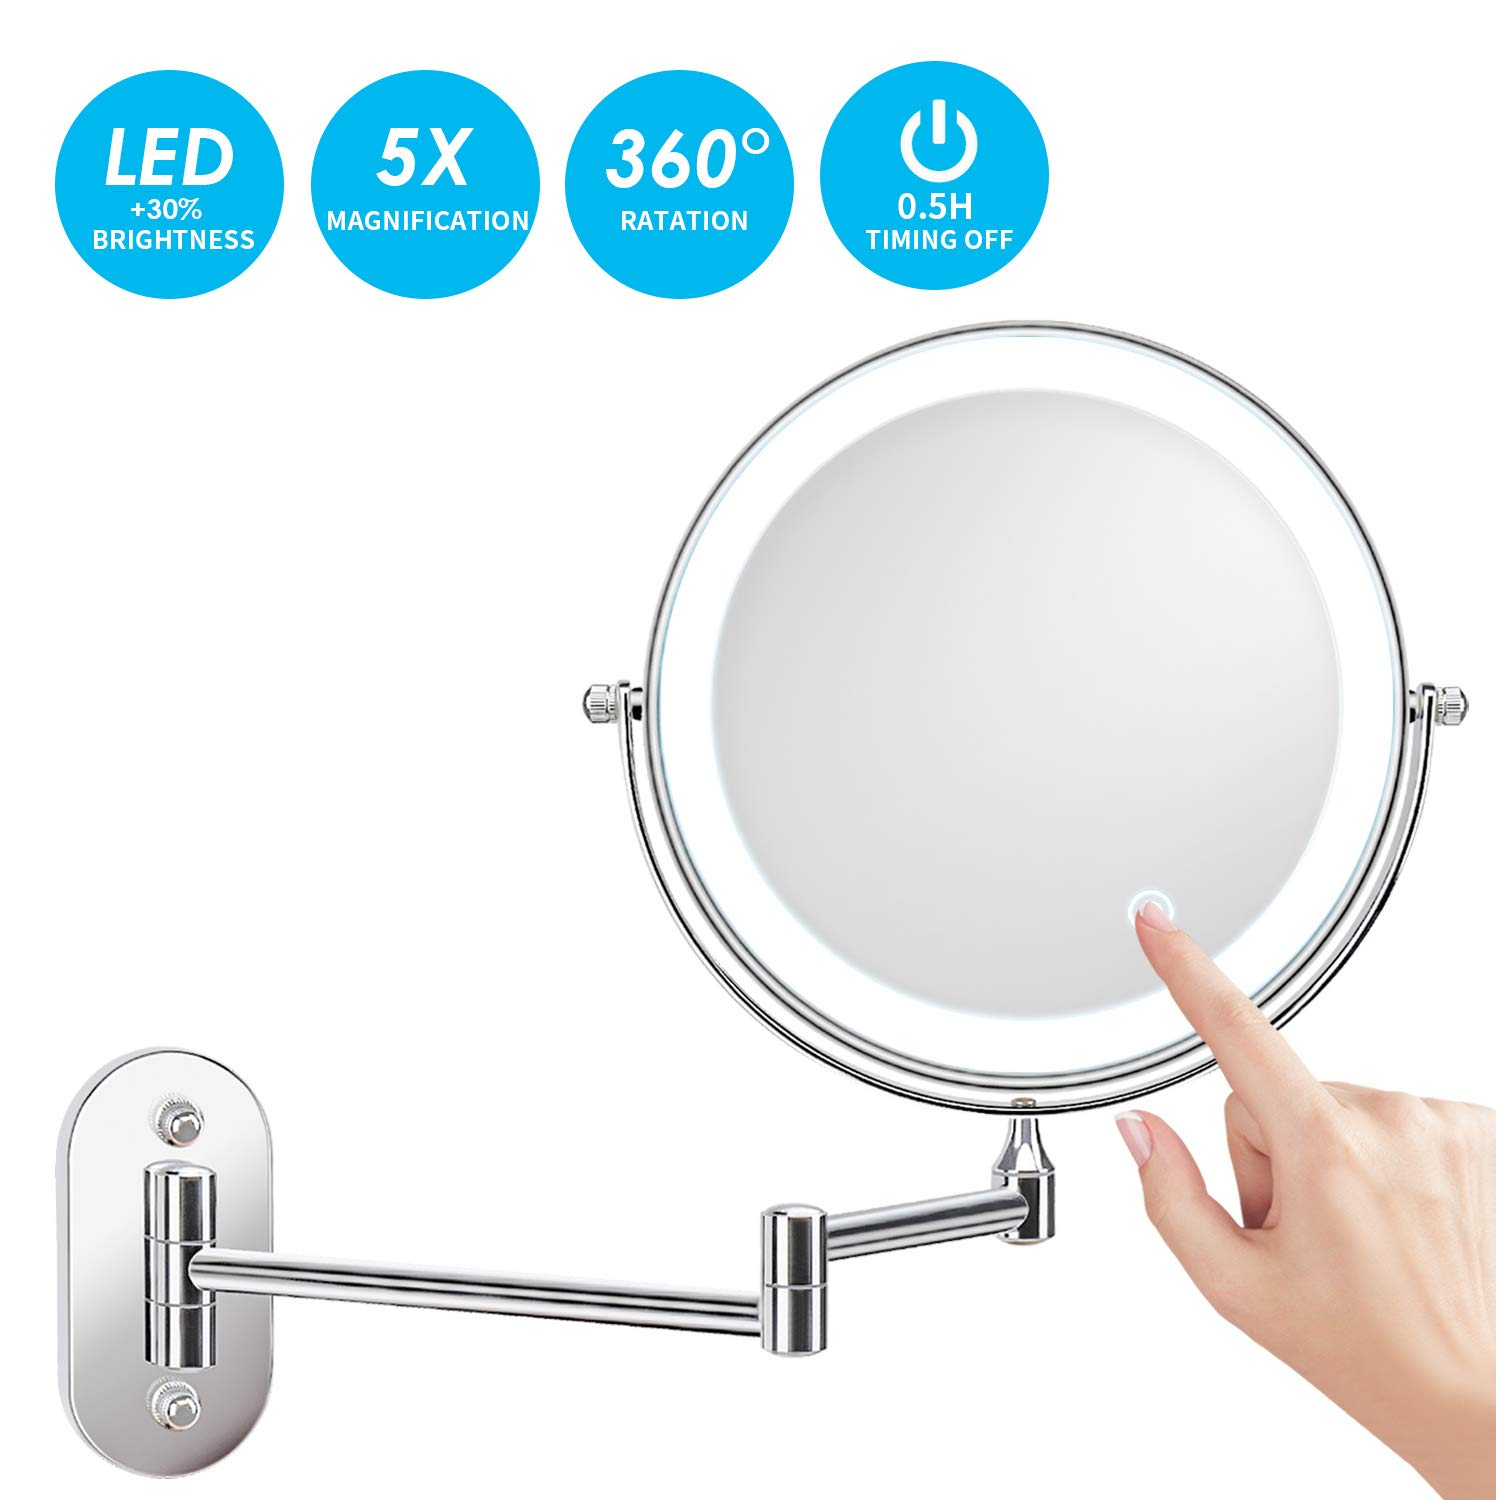 alvorog Wall Mounted Makeup Mirror 8 inches LED Touch Screen Adjustable Light Double Sided 1X/5X Magnifying Vanity Mirror Swivel Extendable